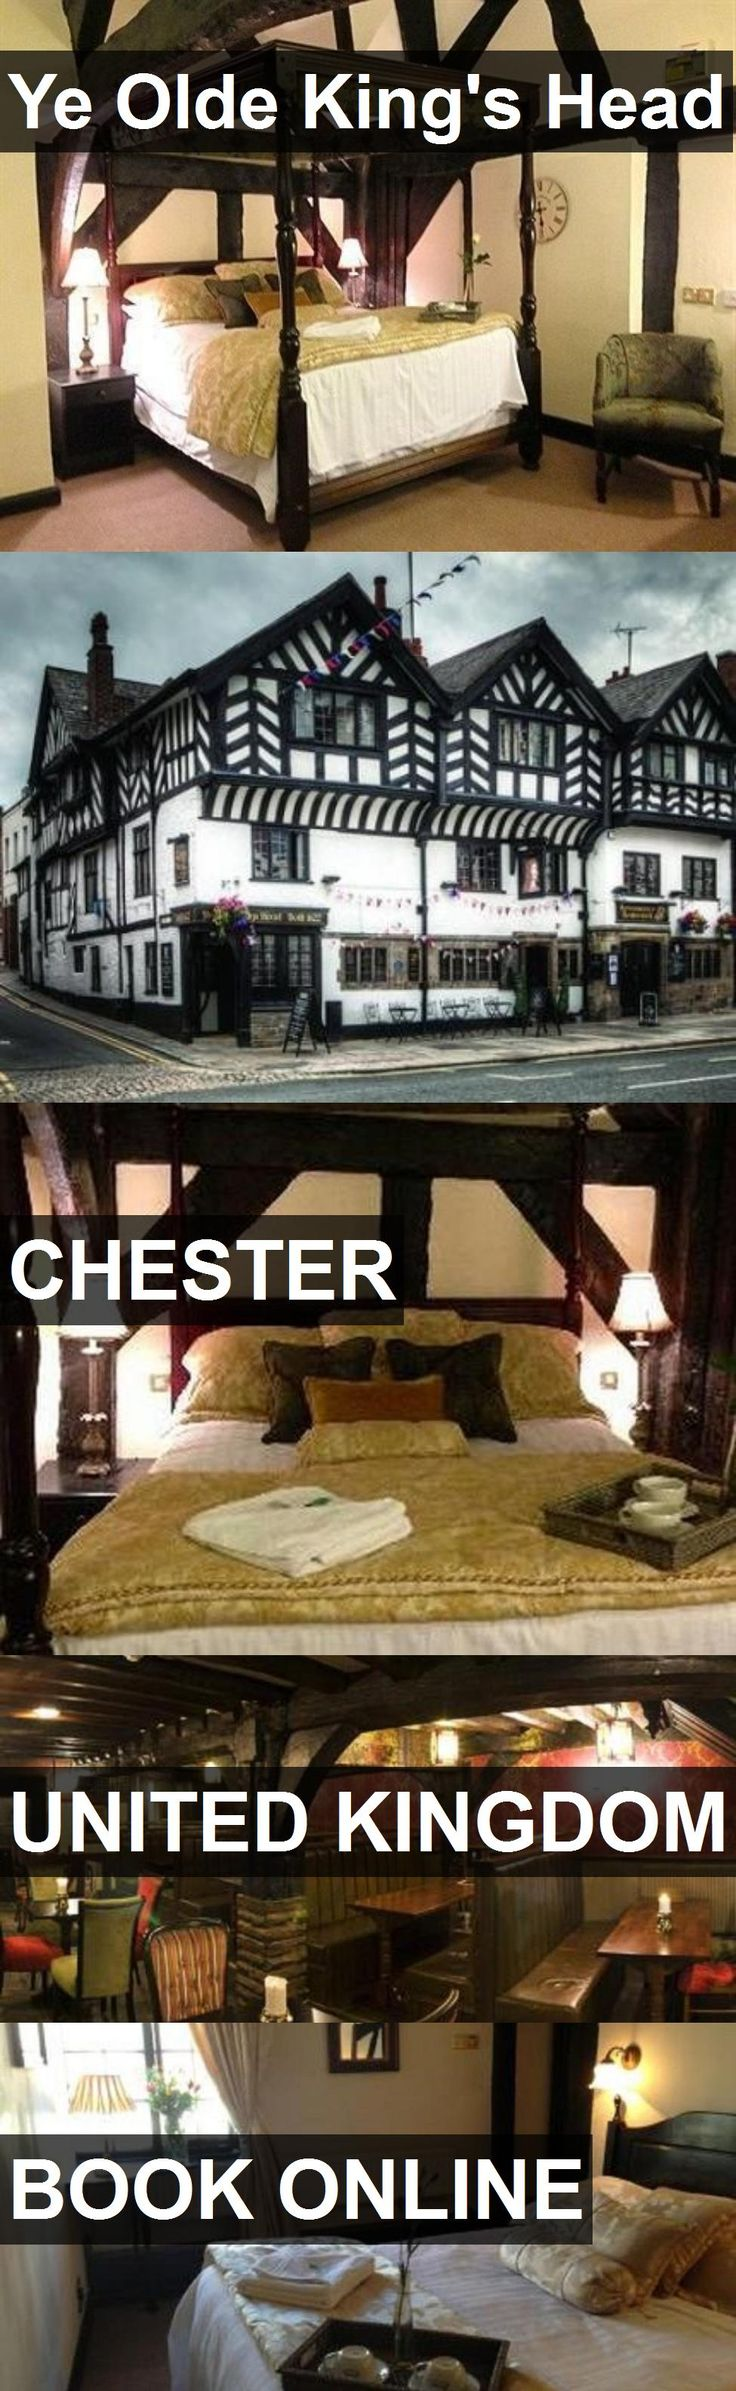 Hotel Ye Olde King's Head in Chester, United Kingdom. For more information, photos, reviews and best prices please follow the link. #UnitedKingdom #Chester #hotel #travel #vacation